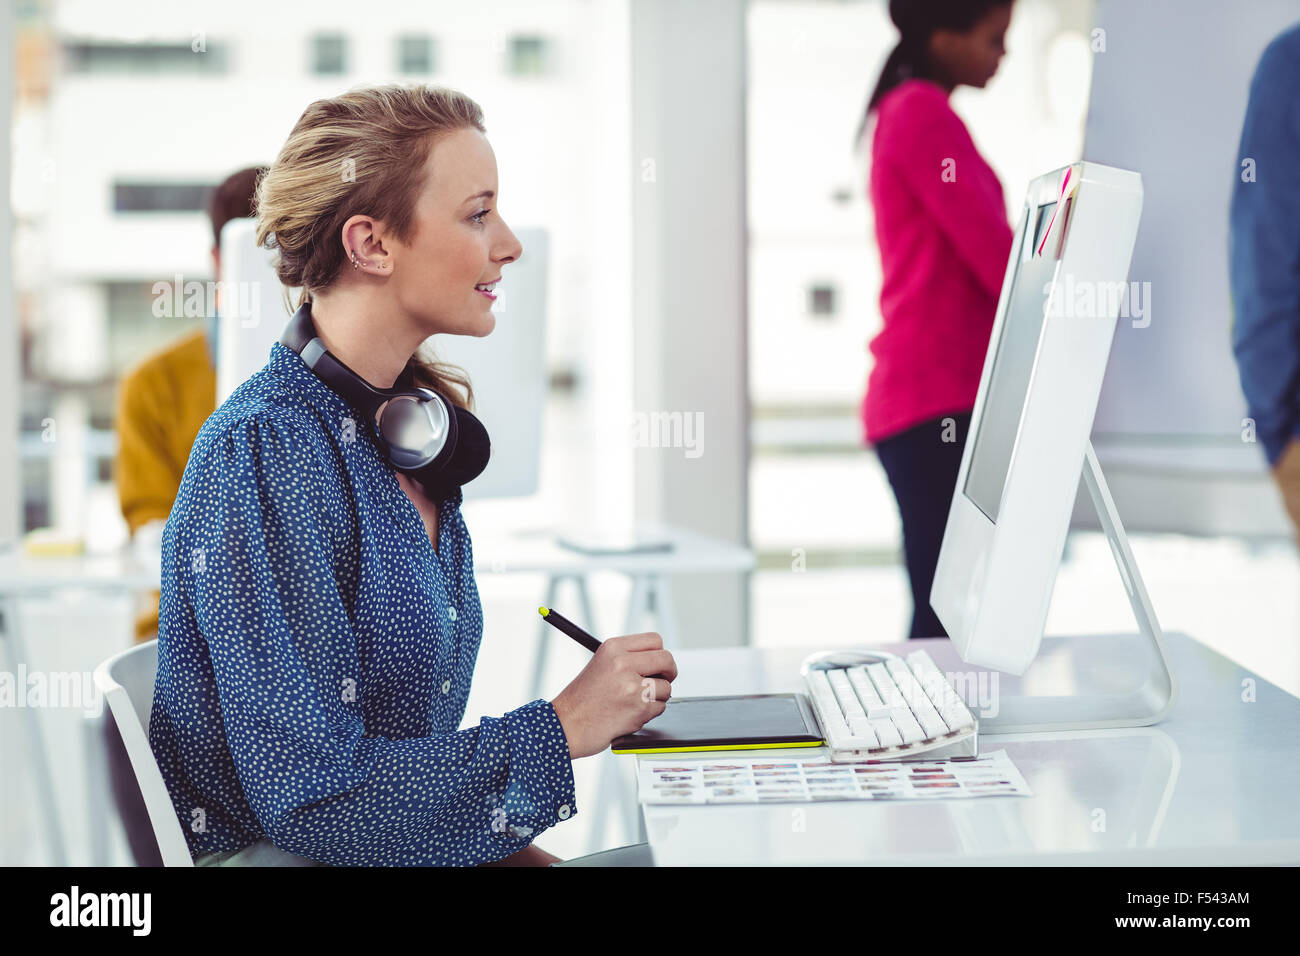 Graphic designer wearing headphones at desk - Stock Image